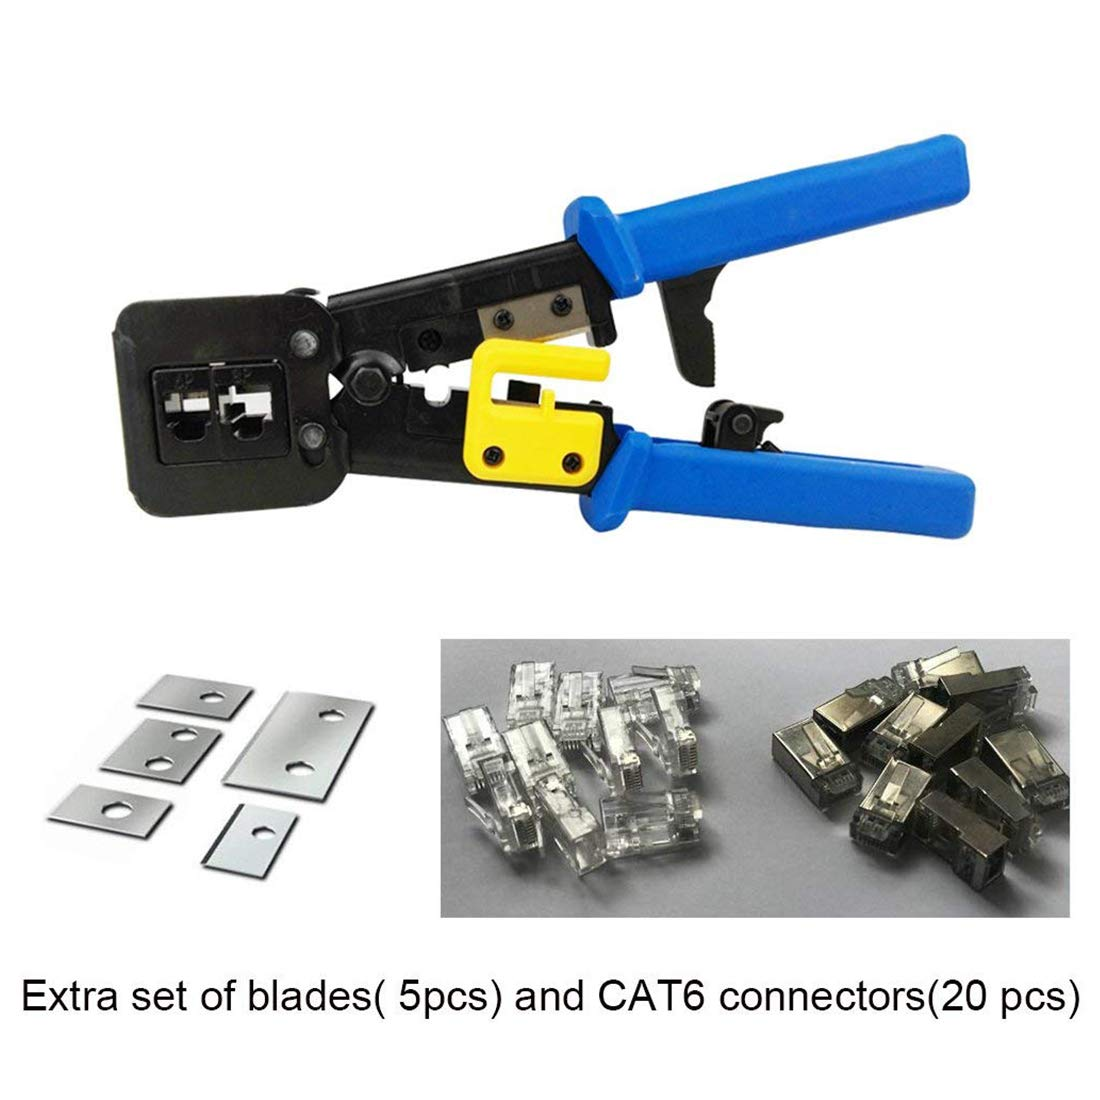 RJ45 Crimp Tool 6P 8P Multi-function Cable Cutter Pass Through Crimper Ethernet Cable Connector Crimping Tool Ratcheting Hand Tools Bonus CAT6 Connector 20 Pack by Ewans (Image #2)